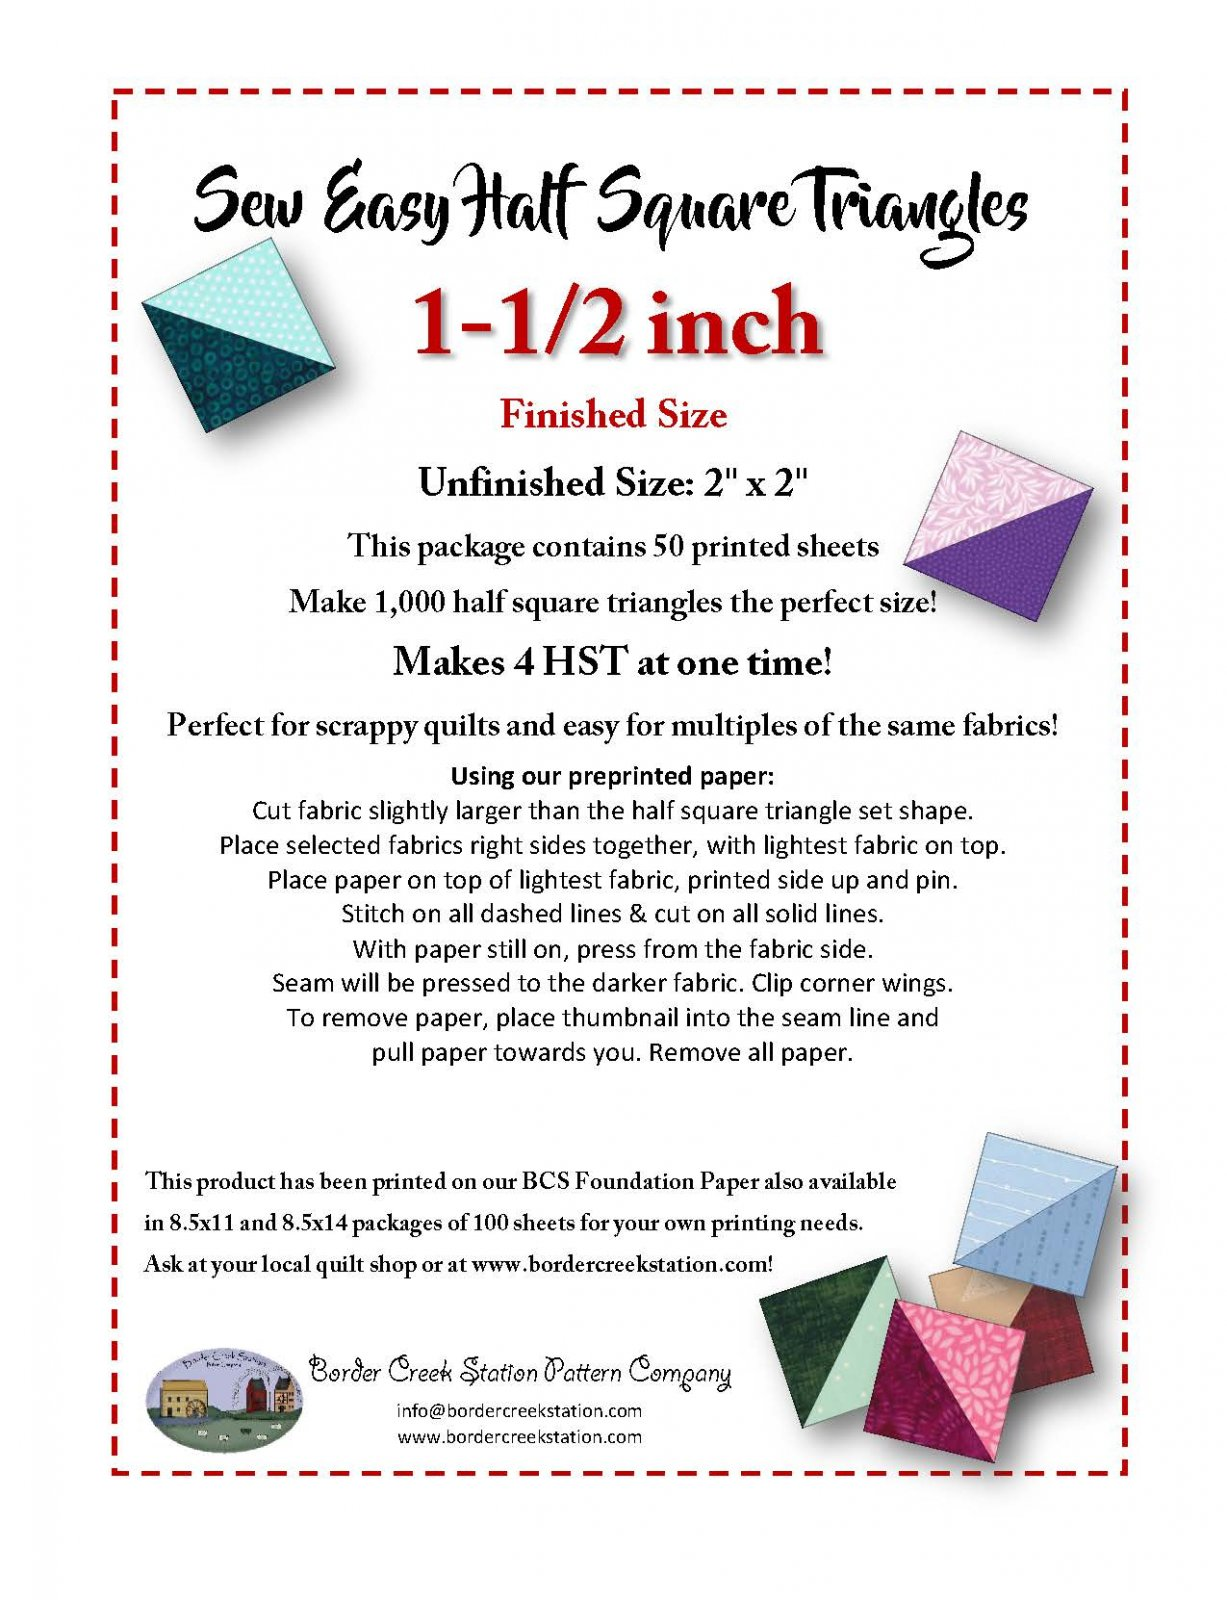 Sew Easy Half Square Triangle Paper for 1-1/2 finished size